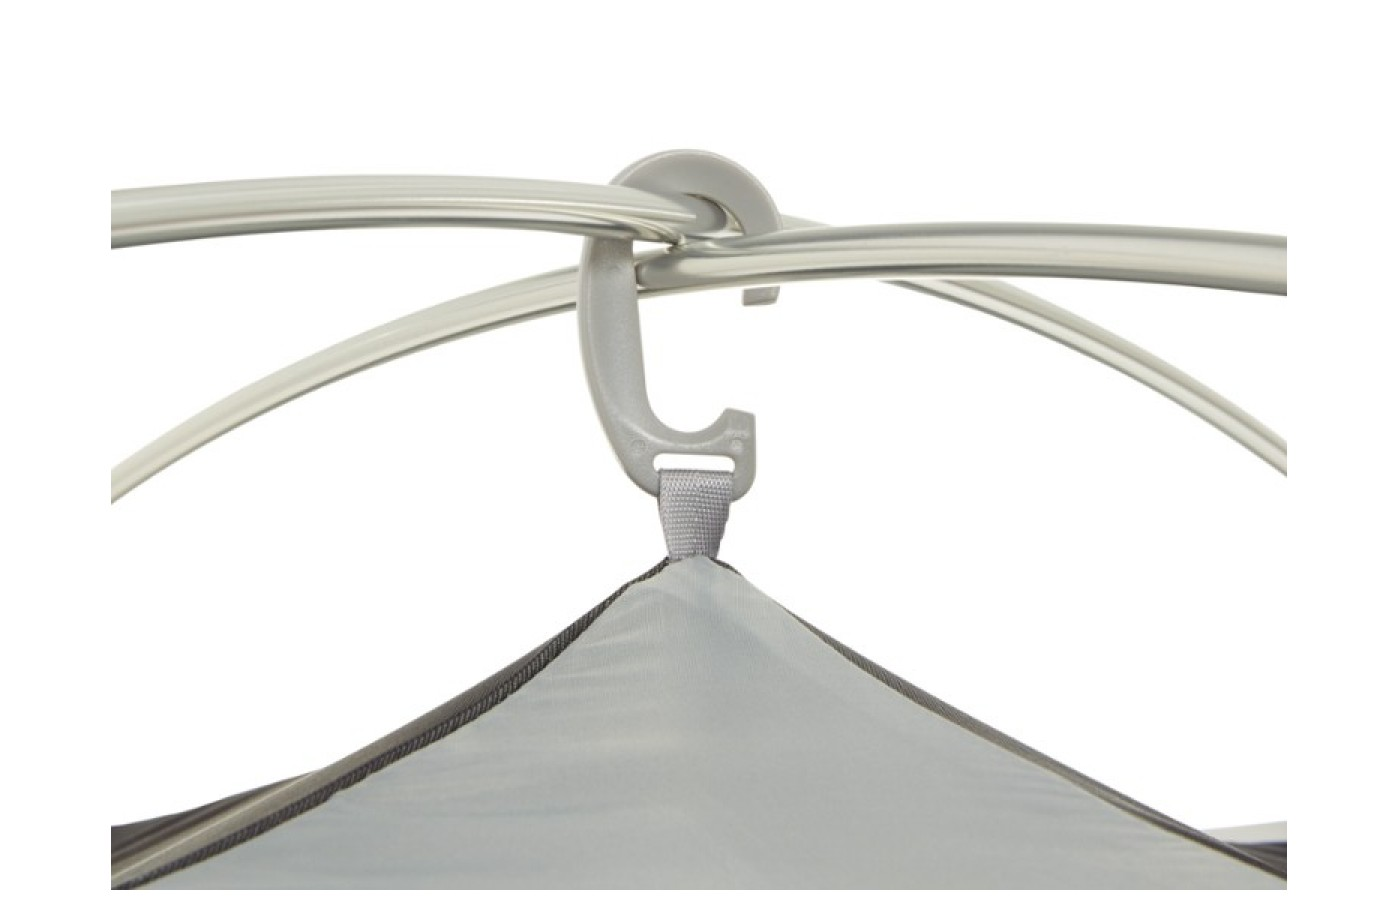 A big polymer plastic hook links the intersection of the tent poles at the top of the tent.